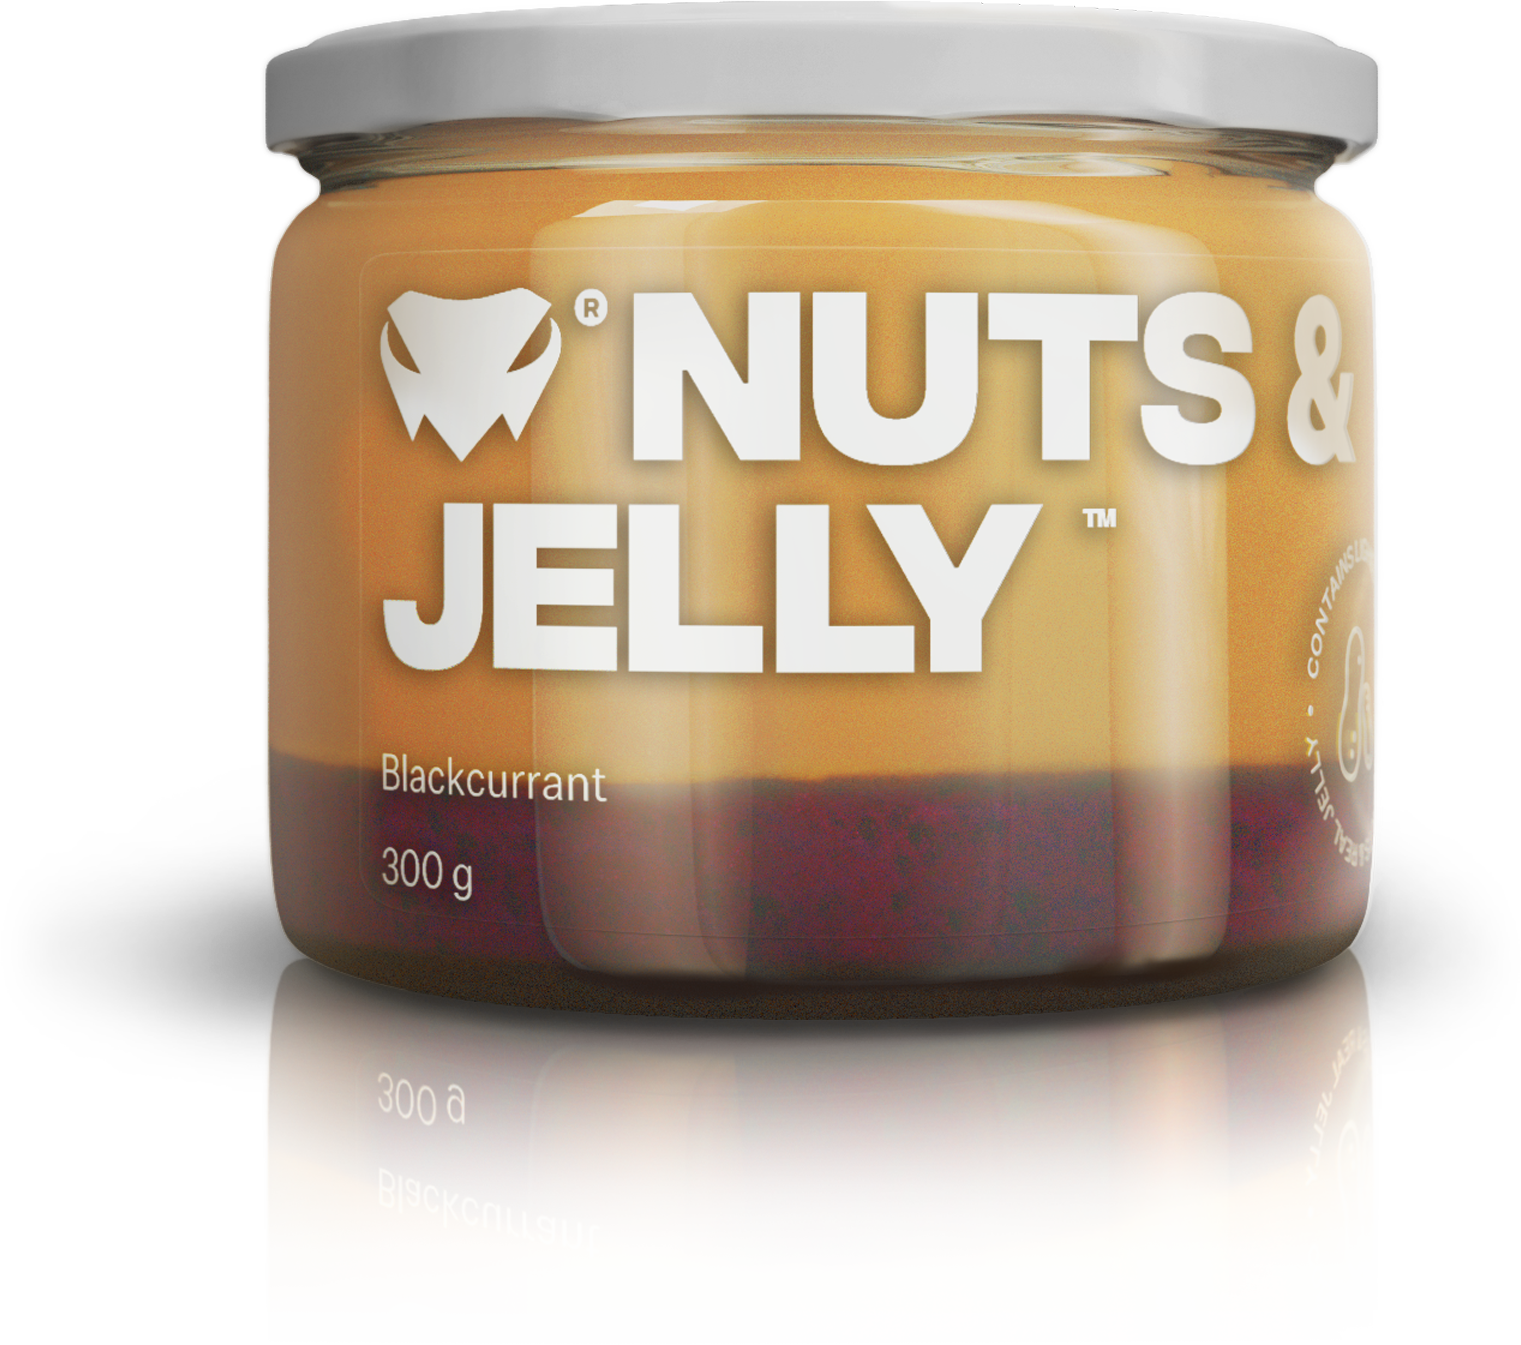 Nuts & Jelly Blackcurrant